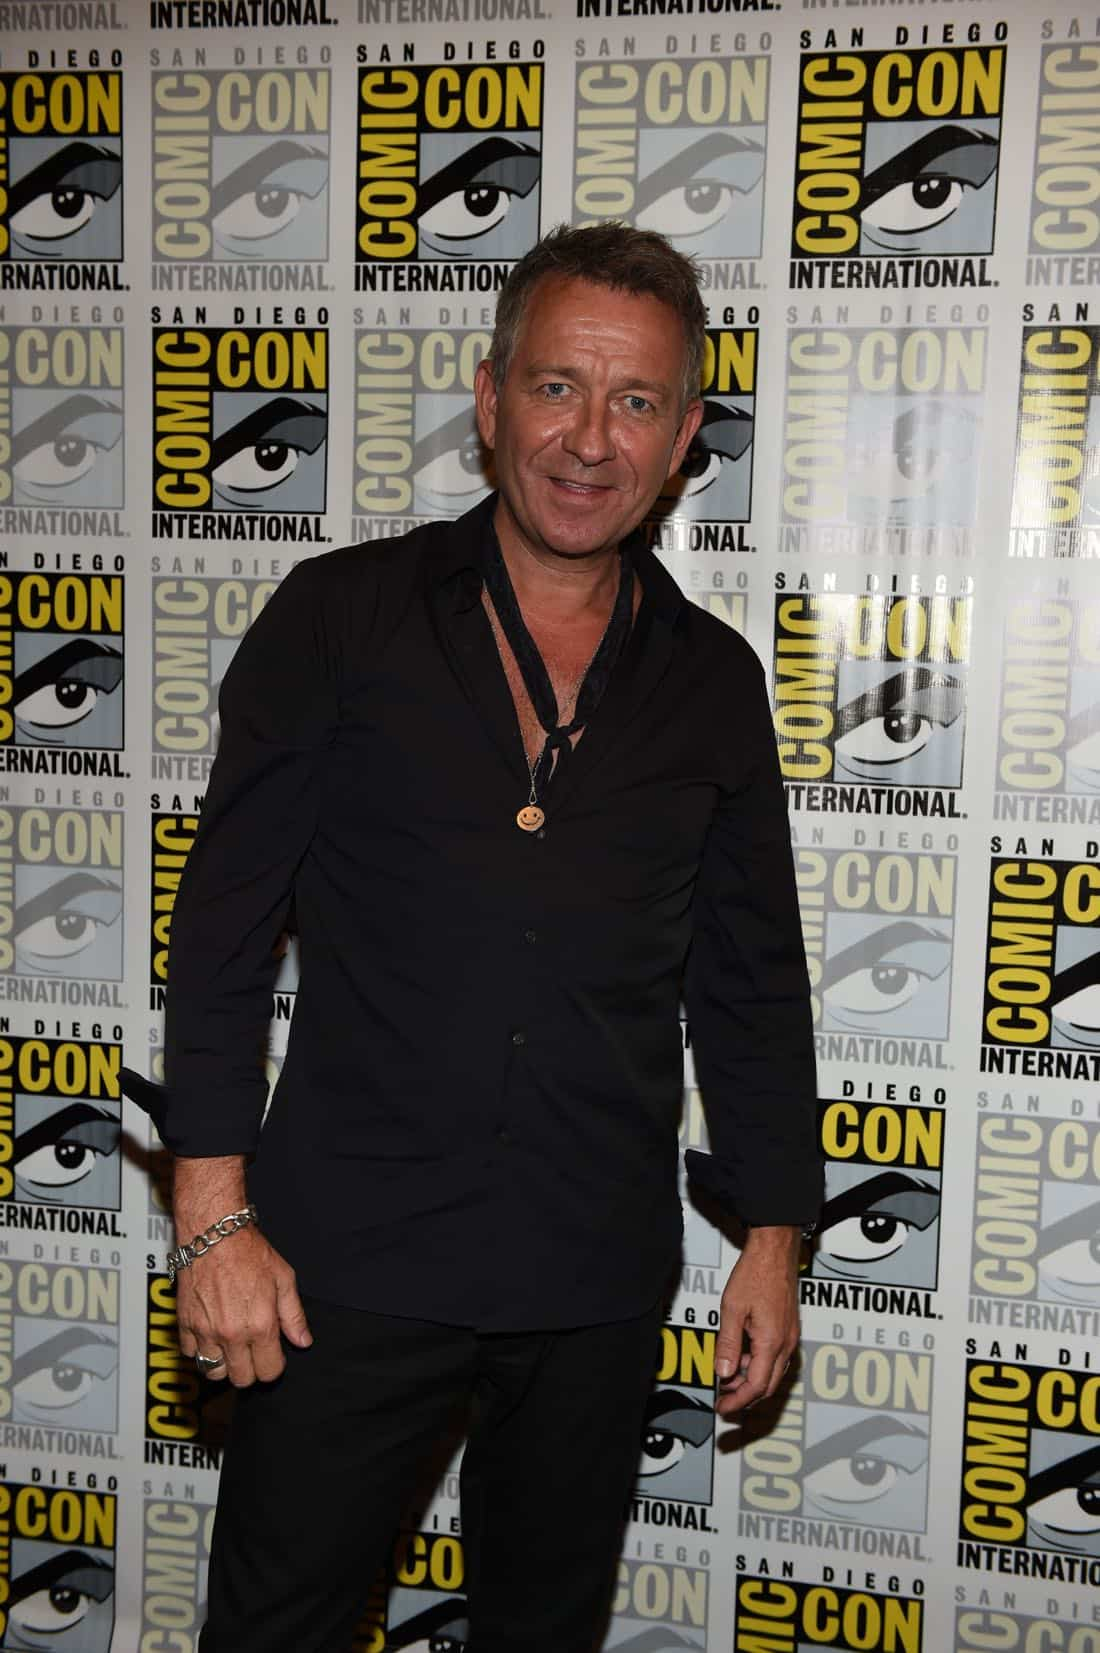 FOX FANFARE AT SAN DIEGO COMIC-CON © 2016: GOTHAM cast member Sean Pertwee during GOTHAM press room on Saturday, July 23 at the FOX FANFARE AT SAN DIEGO COMIC-CON © 2016. CR: Scott Kirkland/FOX © 2016 FOX BROADCASTING